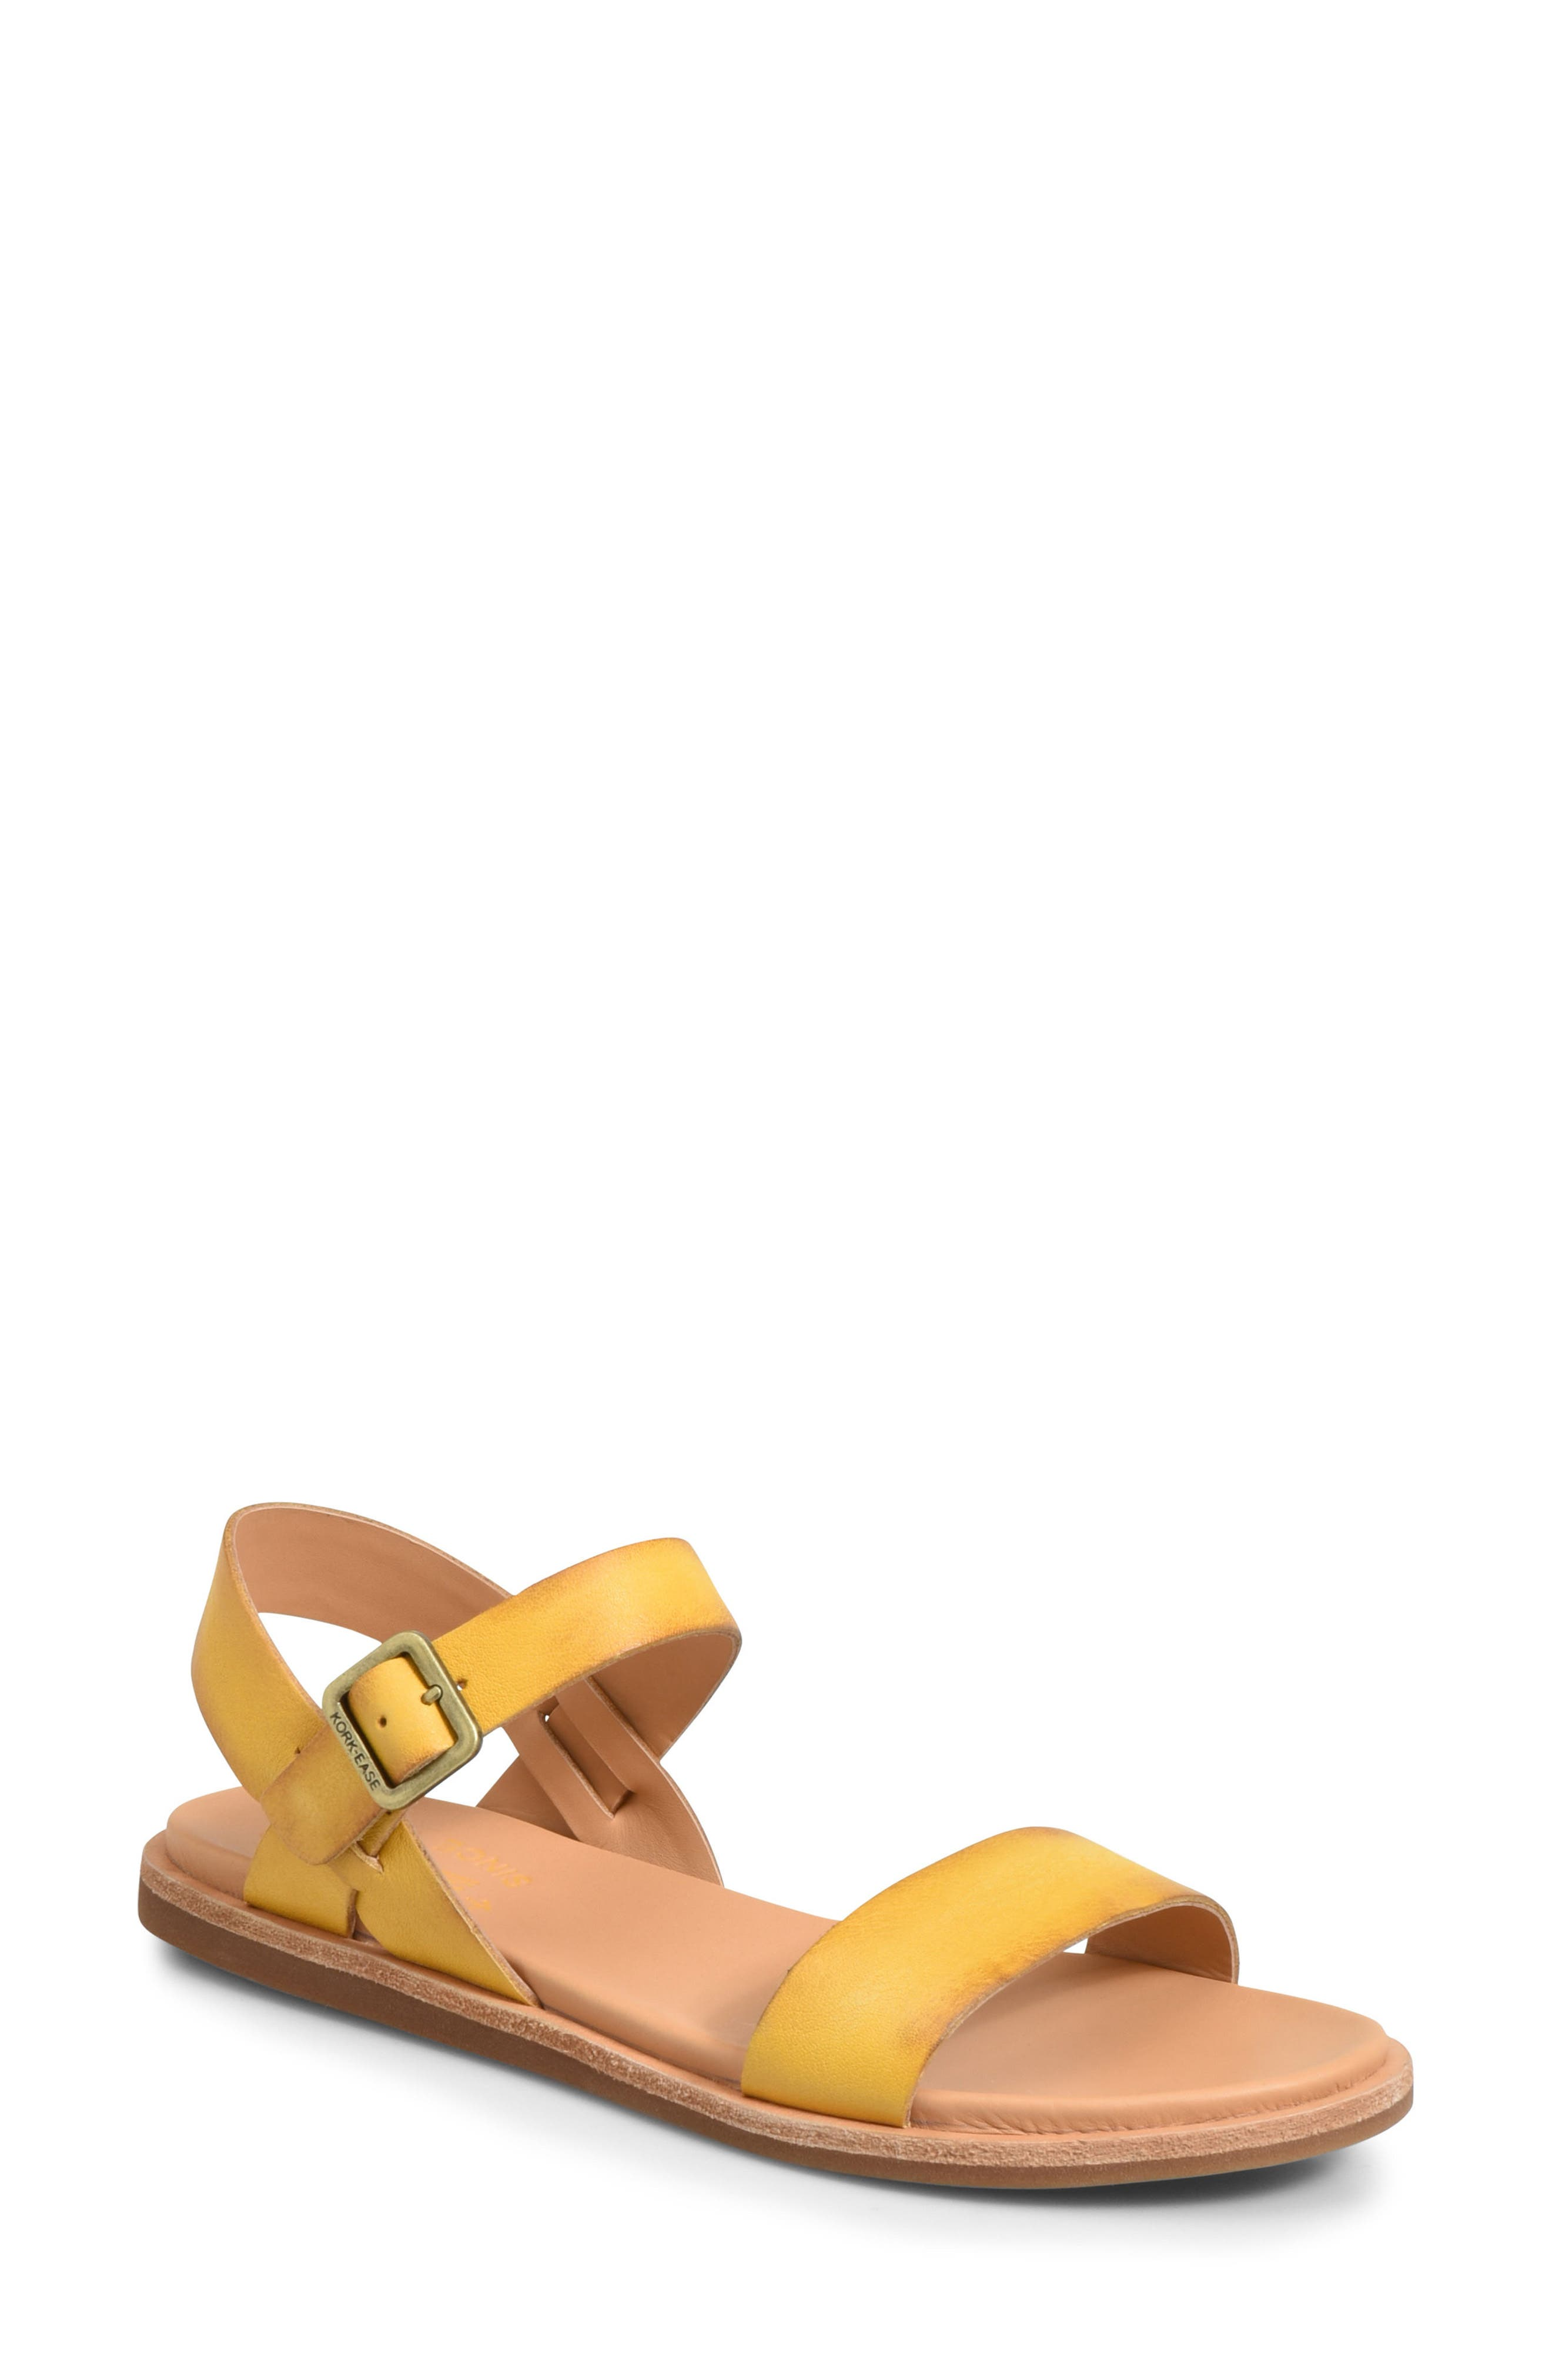 Yucca Sandal,                             Main thumbnail 1, color,                             Yellow Leather